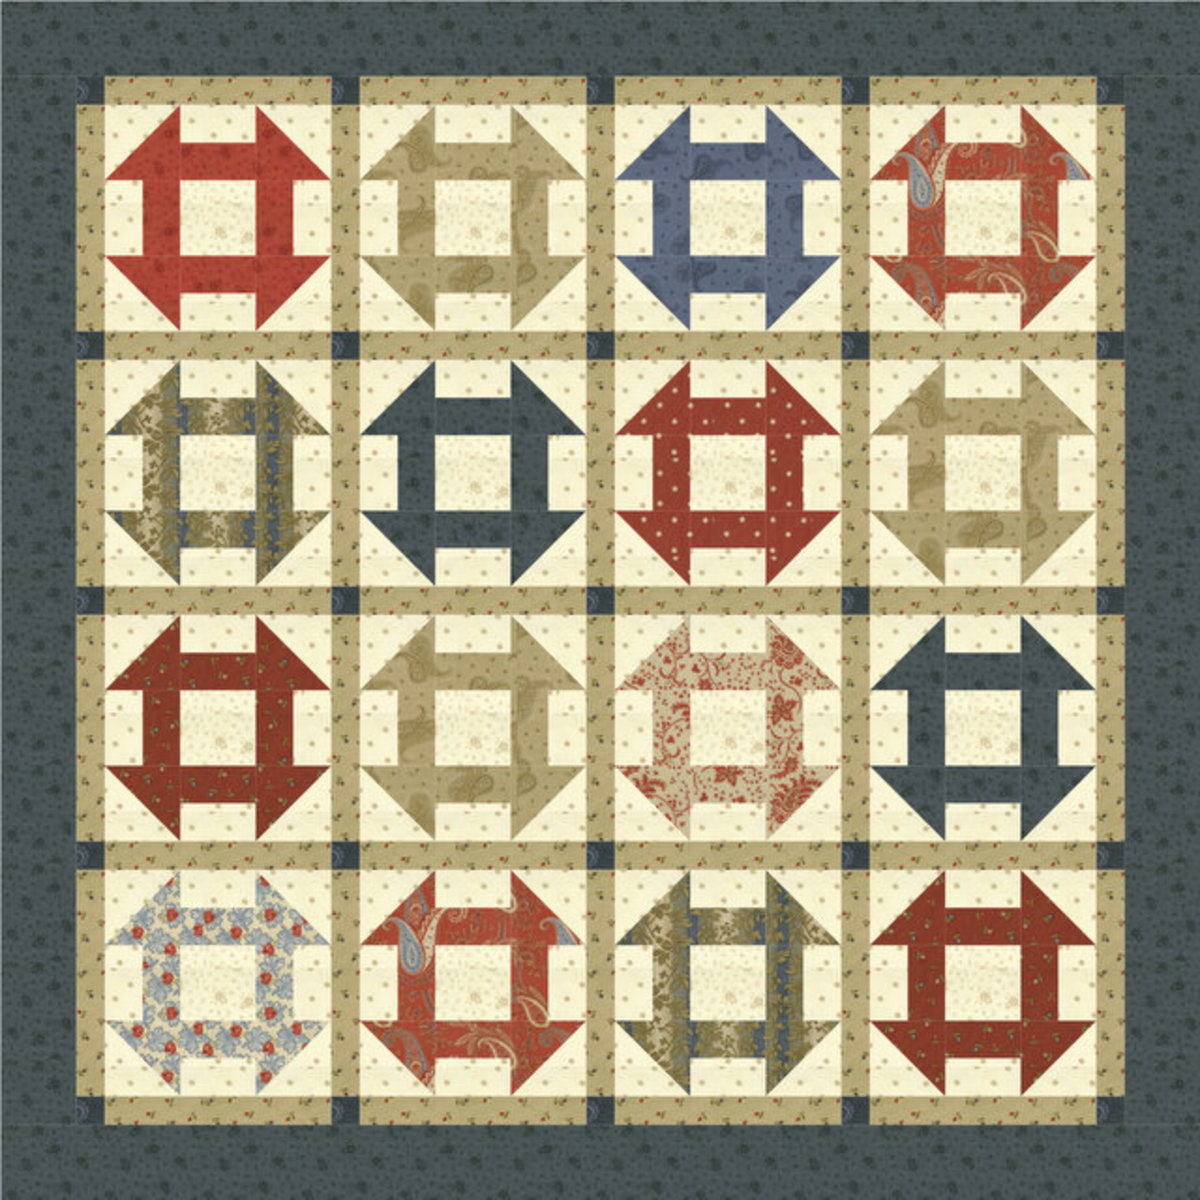 This is a double monkey wrench quilt square pattern.